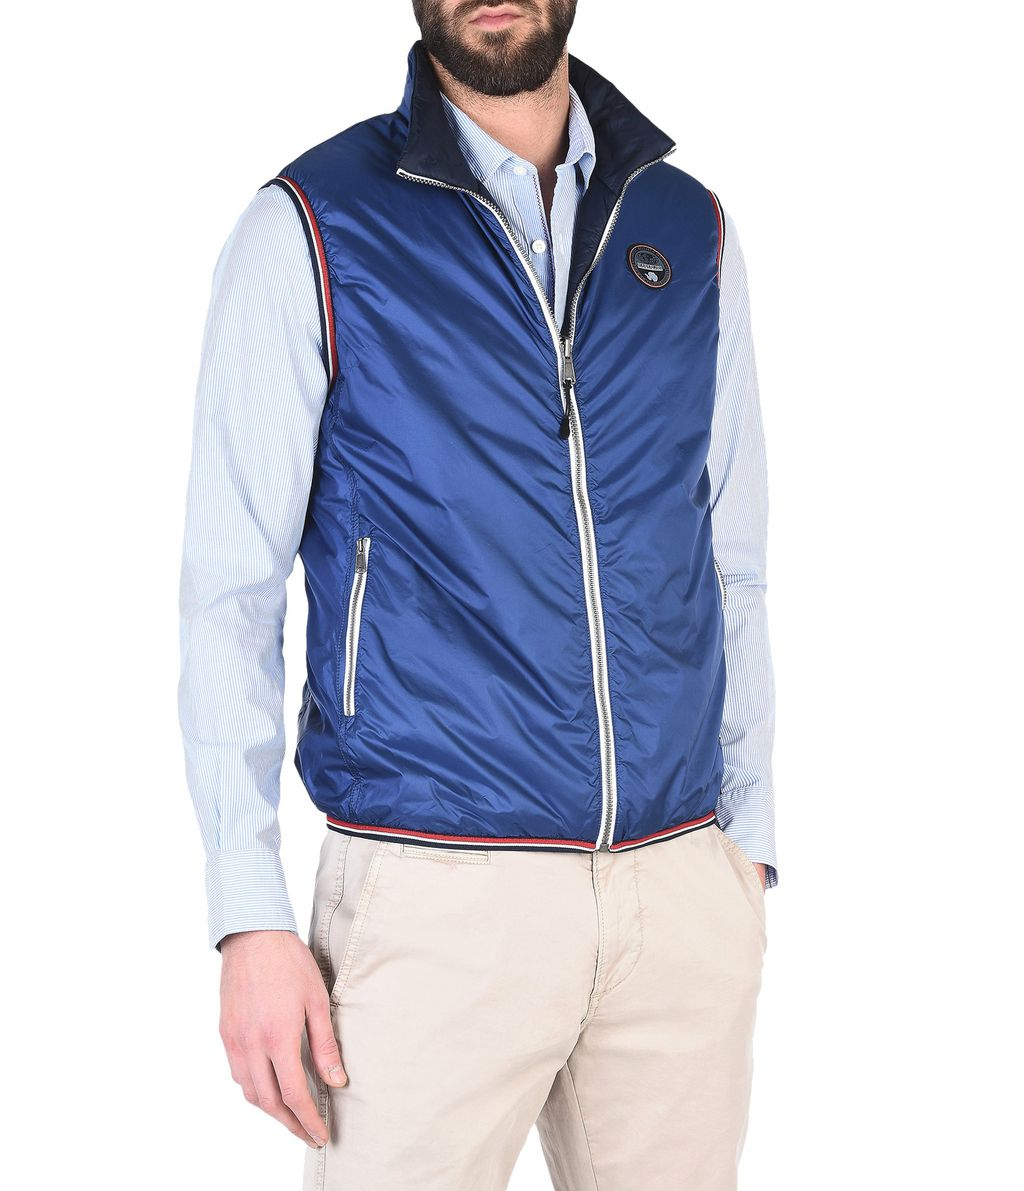 NAPAPIJRI ANNISTON REVERSIBLE MAN VEST,